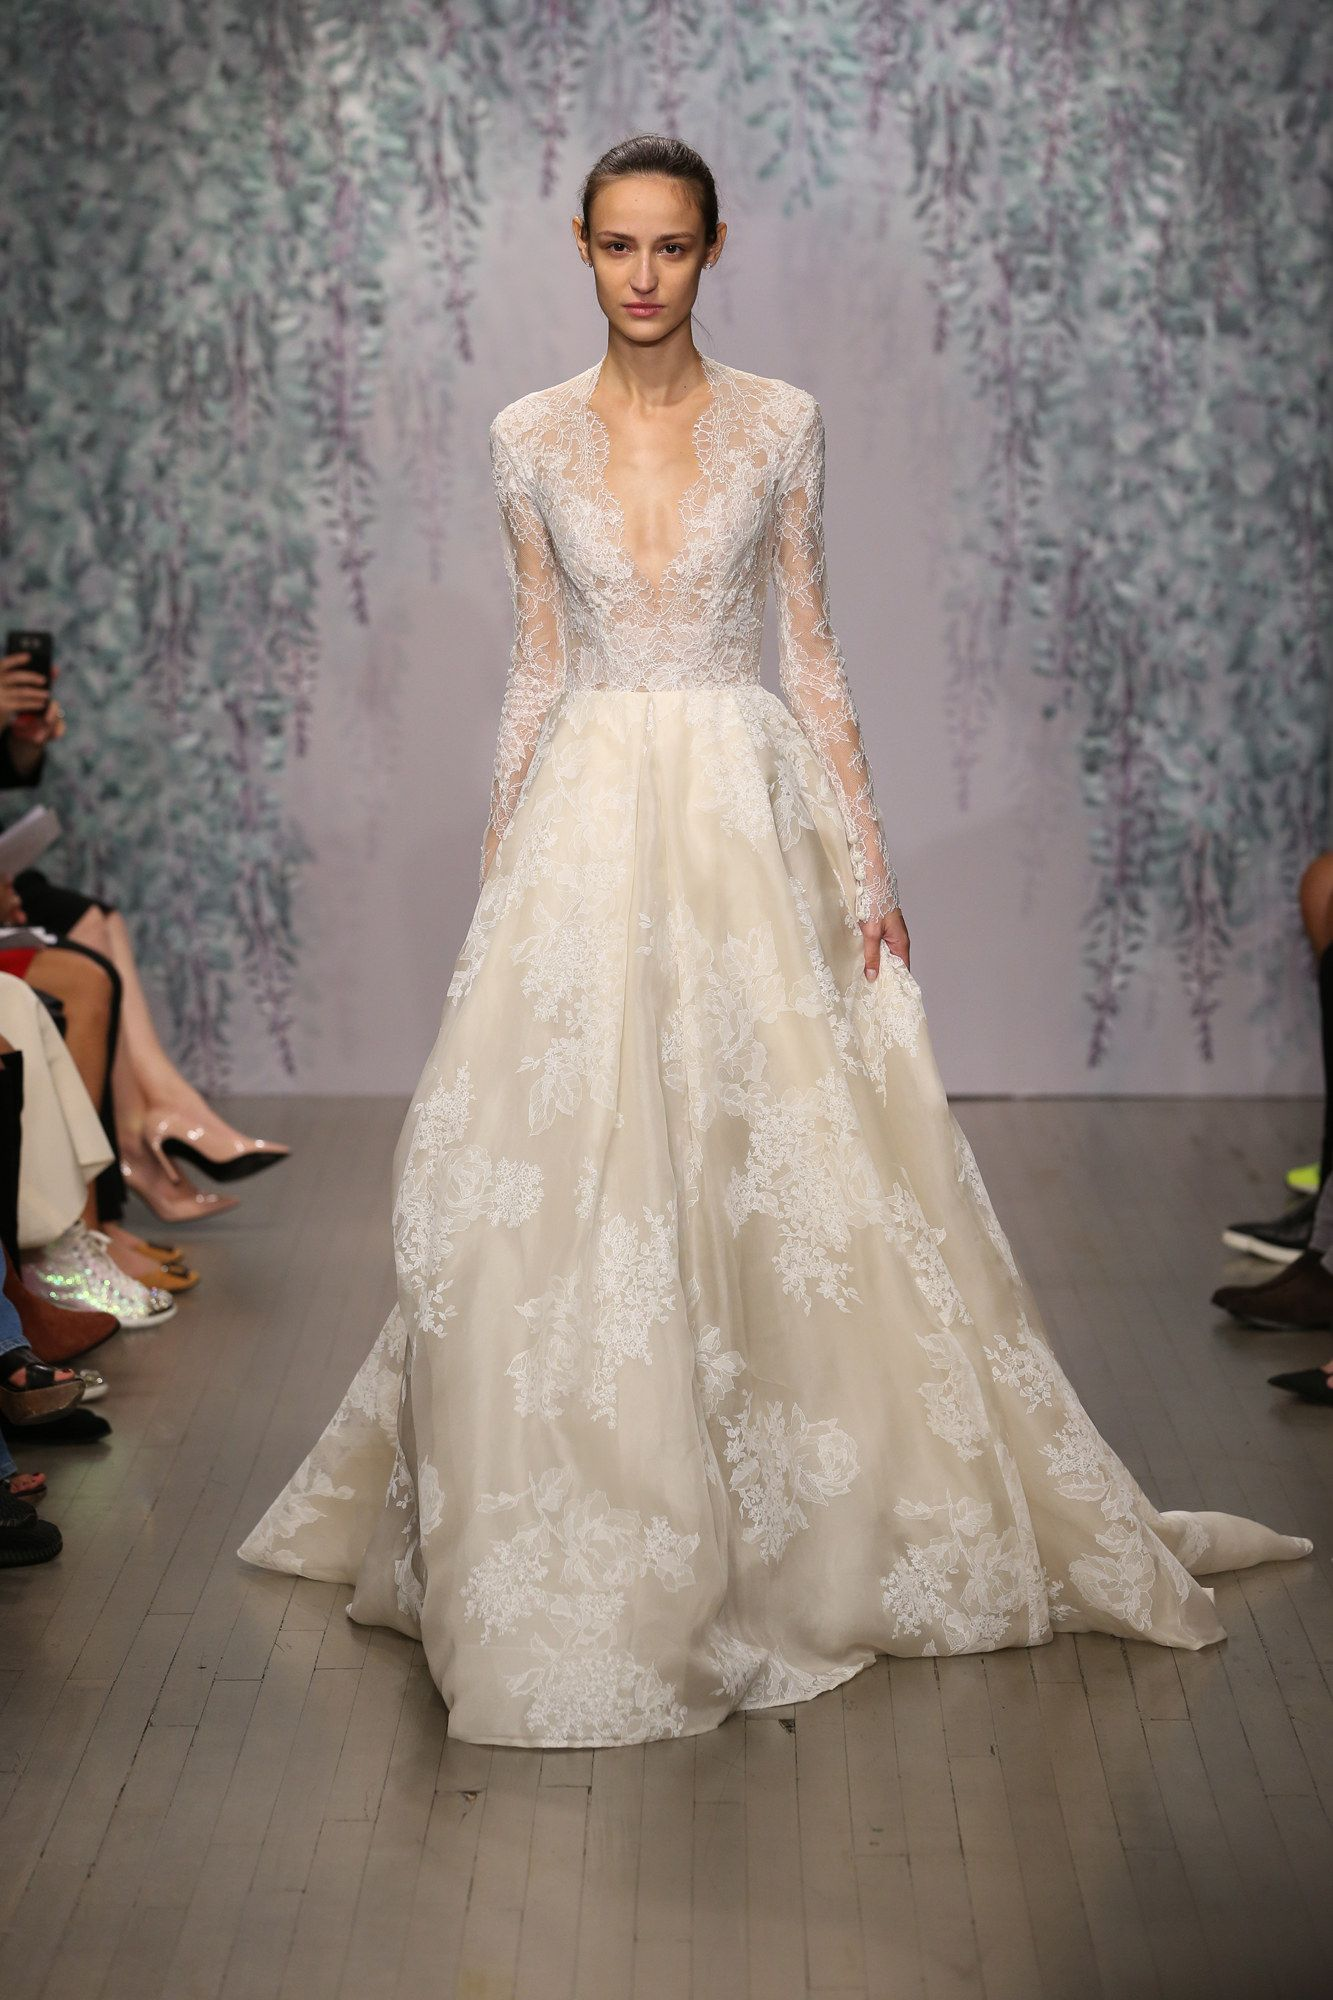 Monique Lhuillier Bridal Fall 2016 Fashion Show